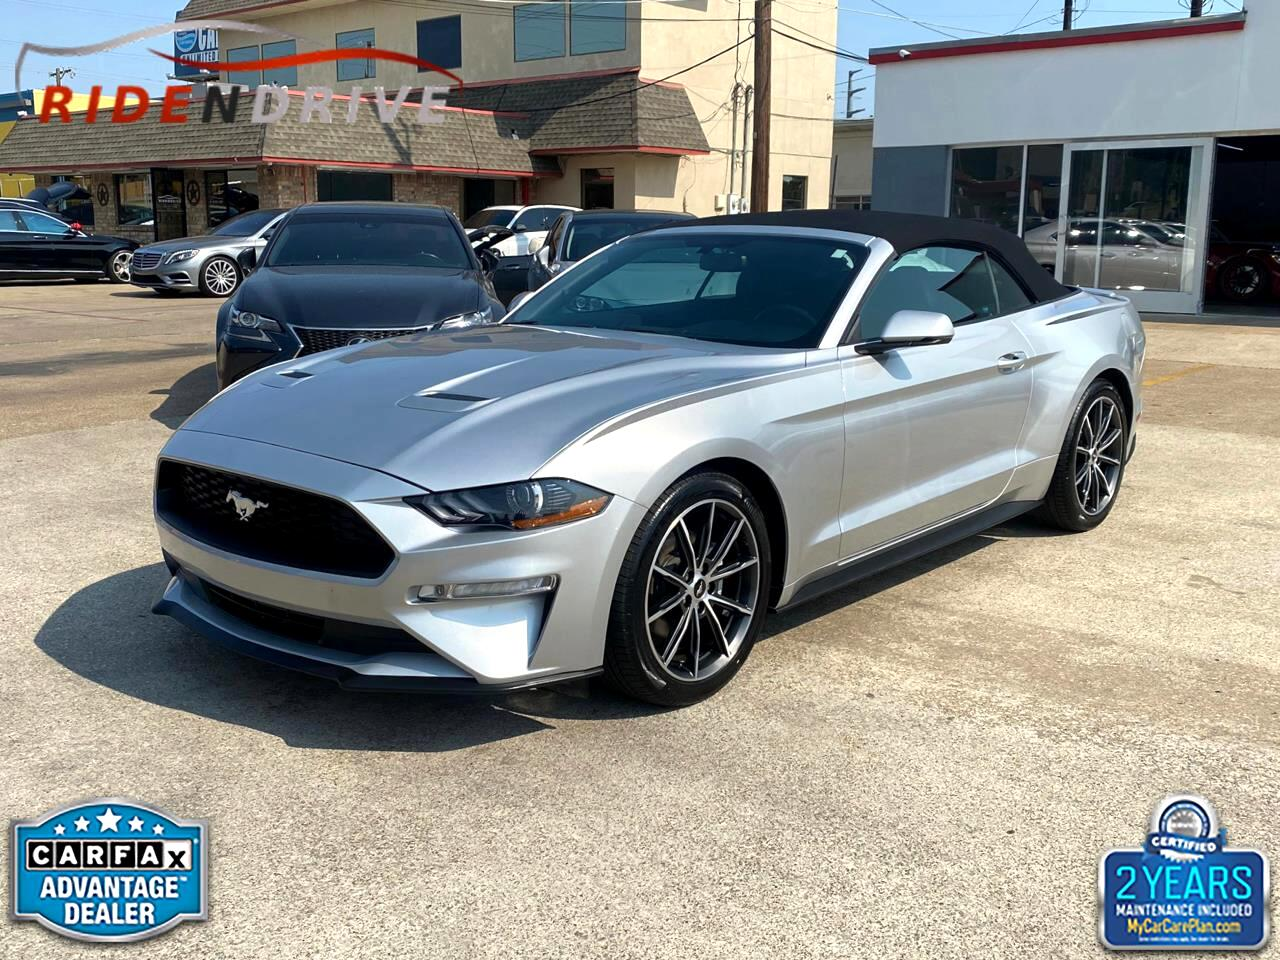 Ford Mustang EcoBoost Convertible 2018